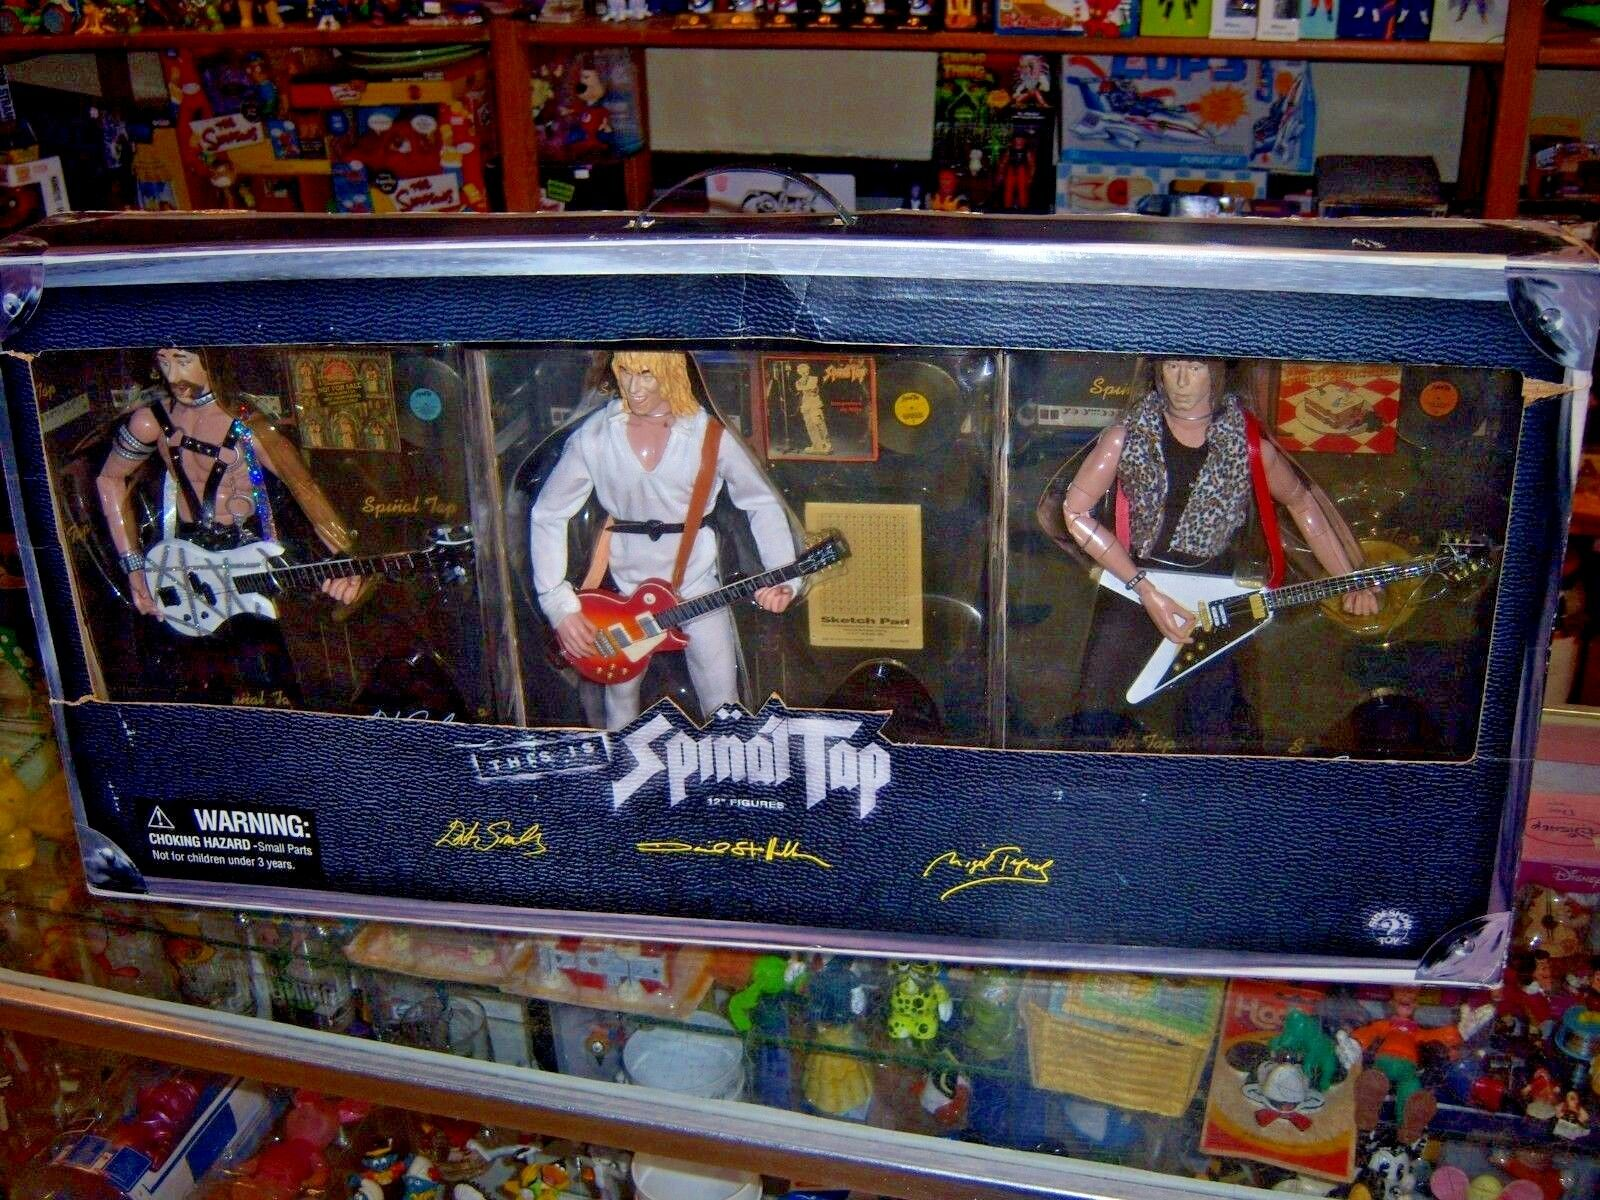 1;6 scale  12  This is Spinal Tap 3 cifra set (MISB) Sidemostrare (2000)  negozio all'ingrosso